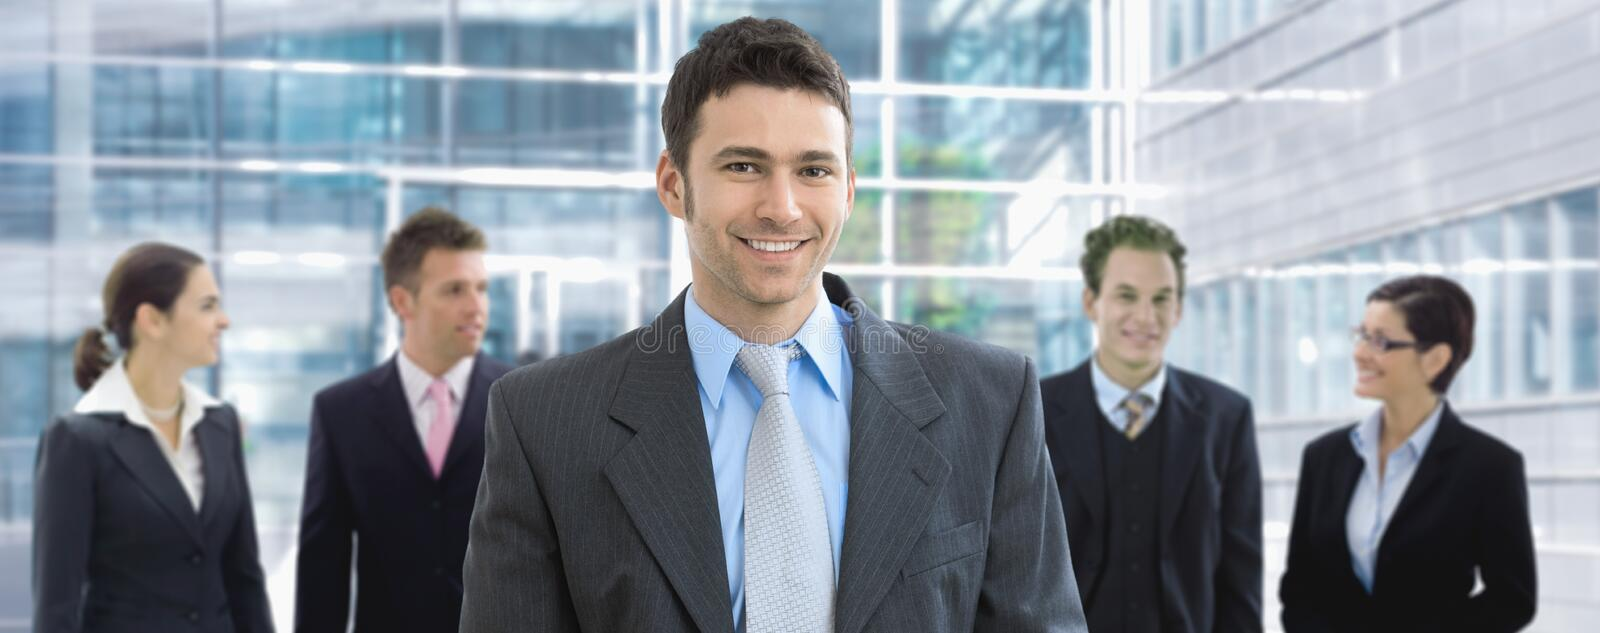 Businessman and team stock images